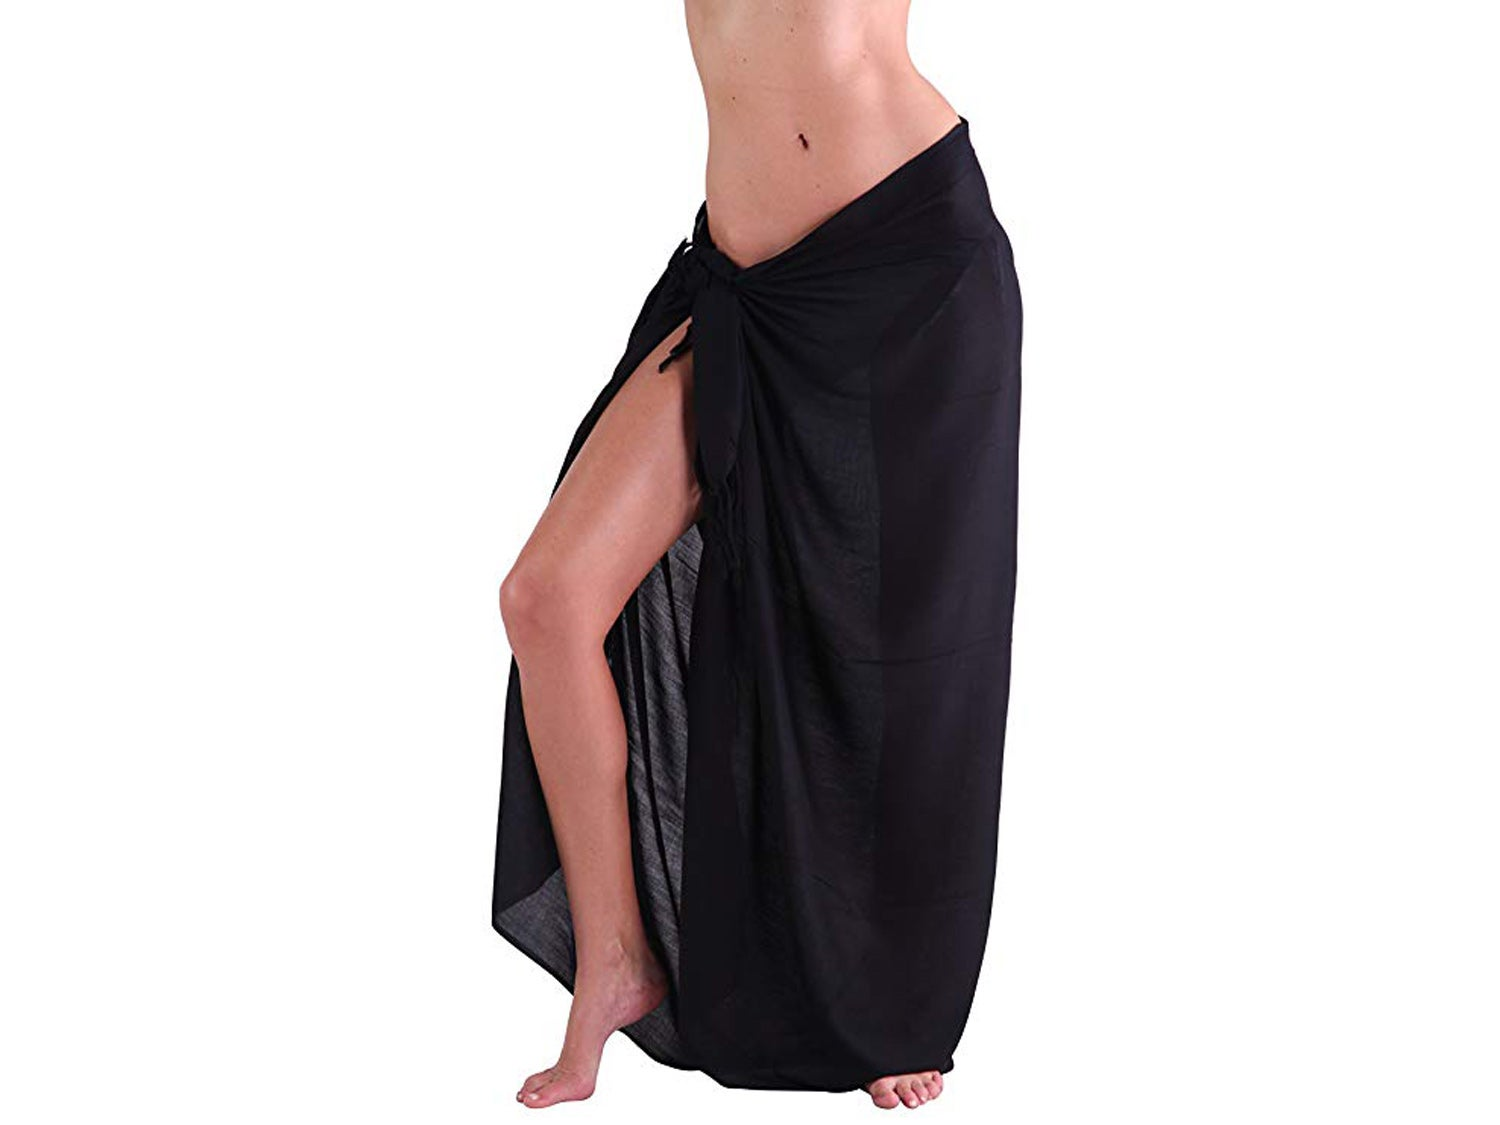 INGEAR Sarong Wraps for Women Bathing Suit Wrap with Coconut Shell Included Sarongs for The Beach